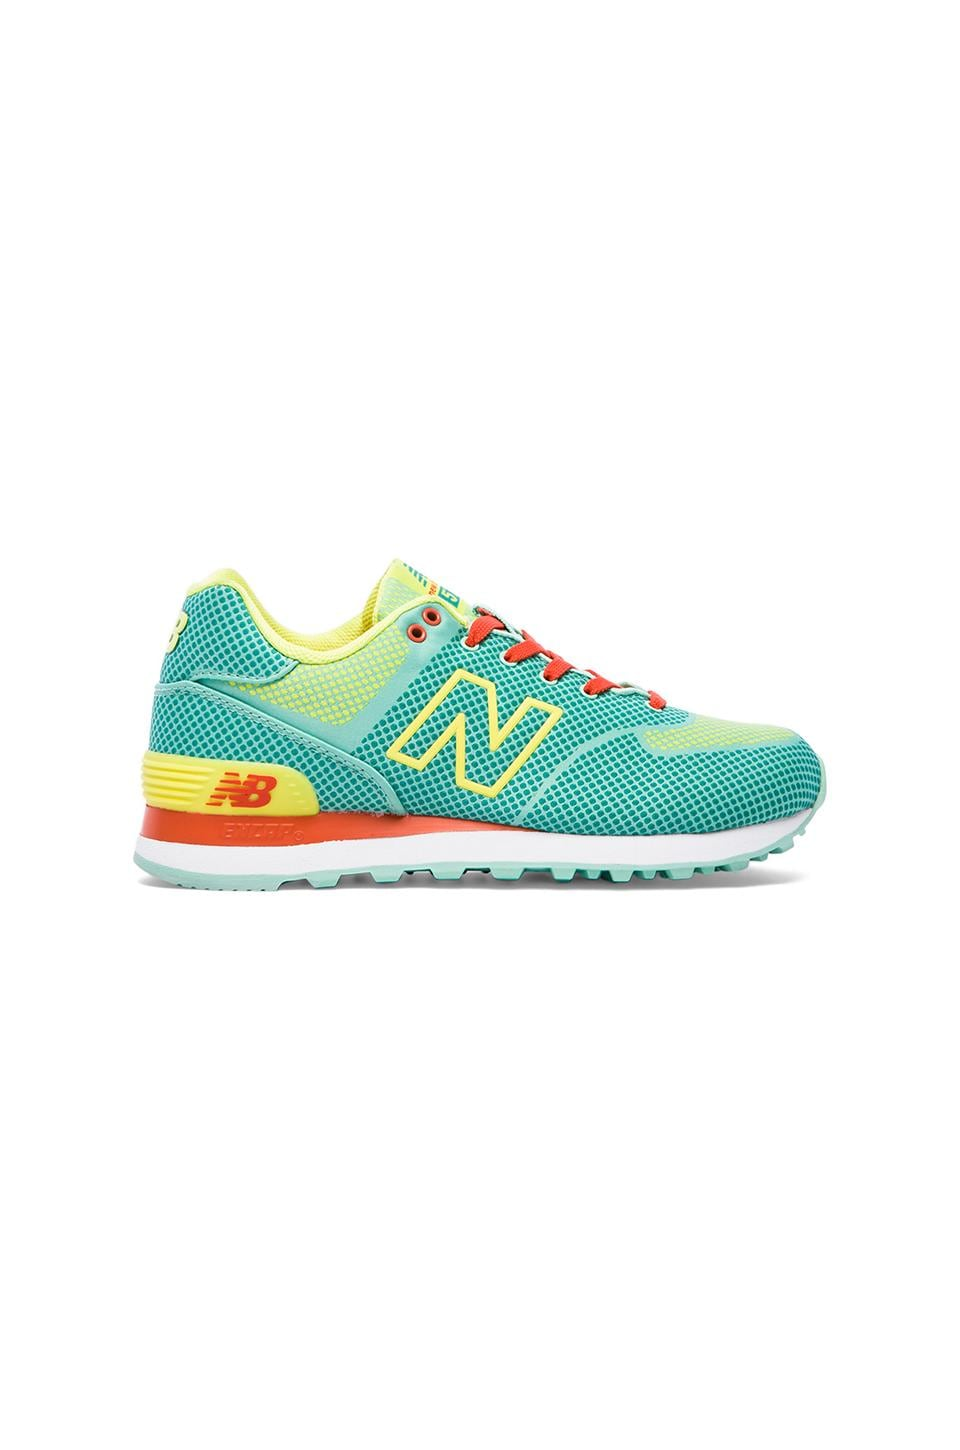 New Balance Woven Sneaker in Aquamarine & Lemon Pop